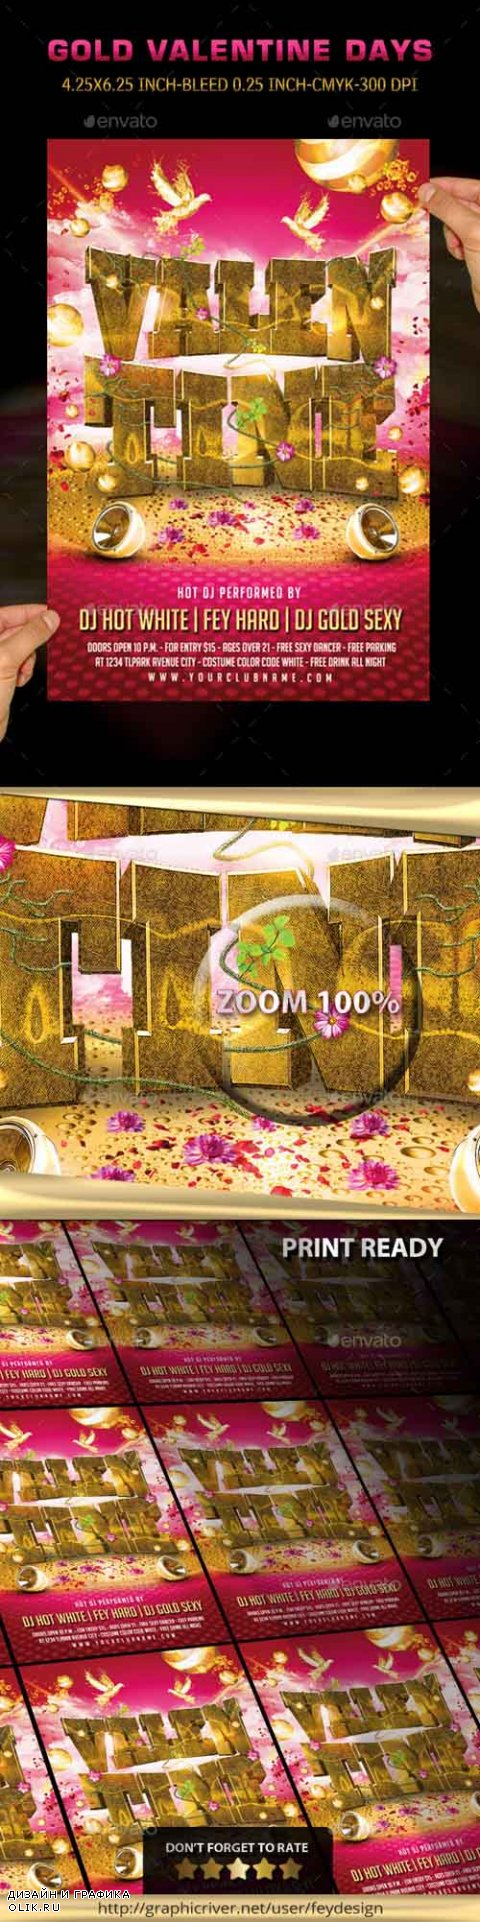 Gold Valentine Party Flyer 10033848